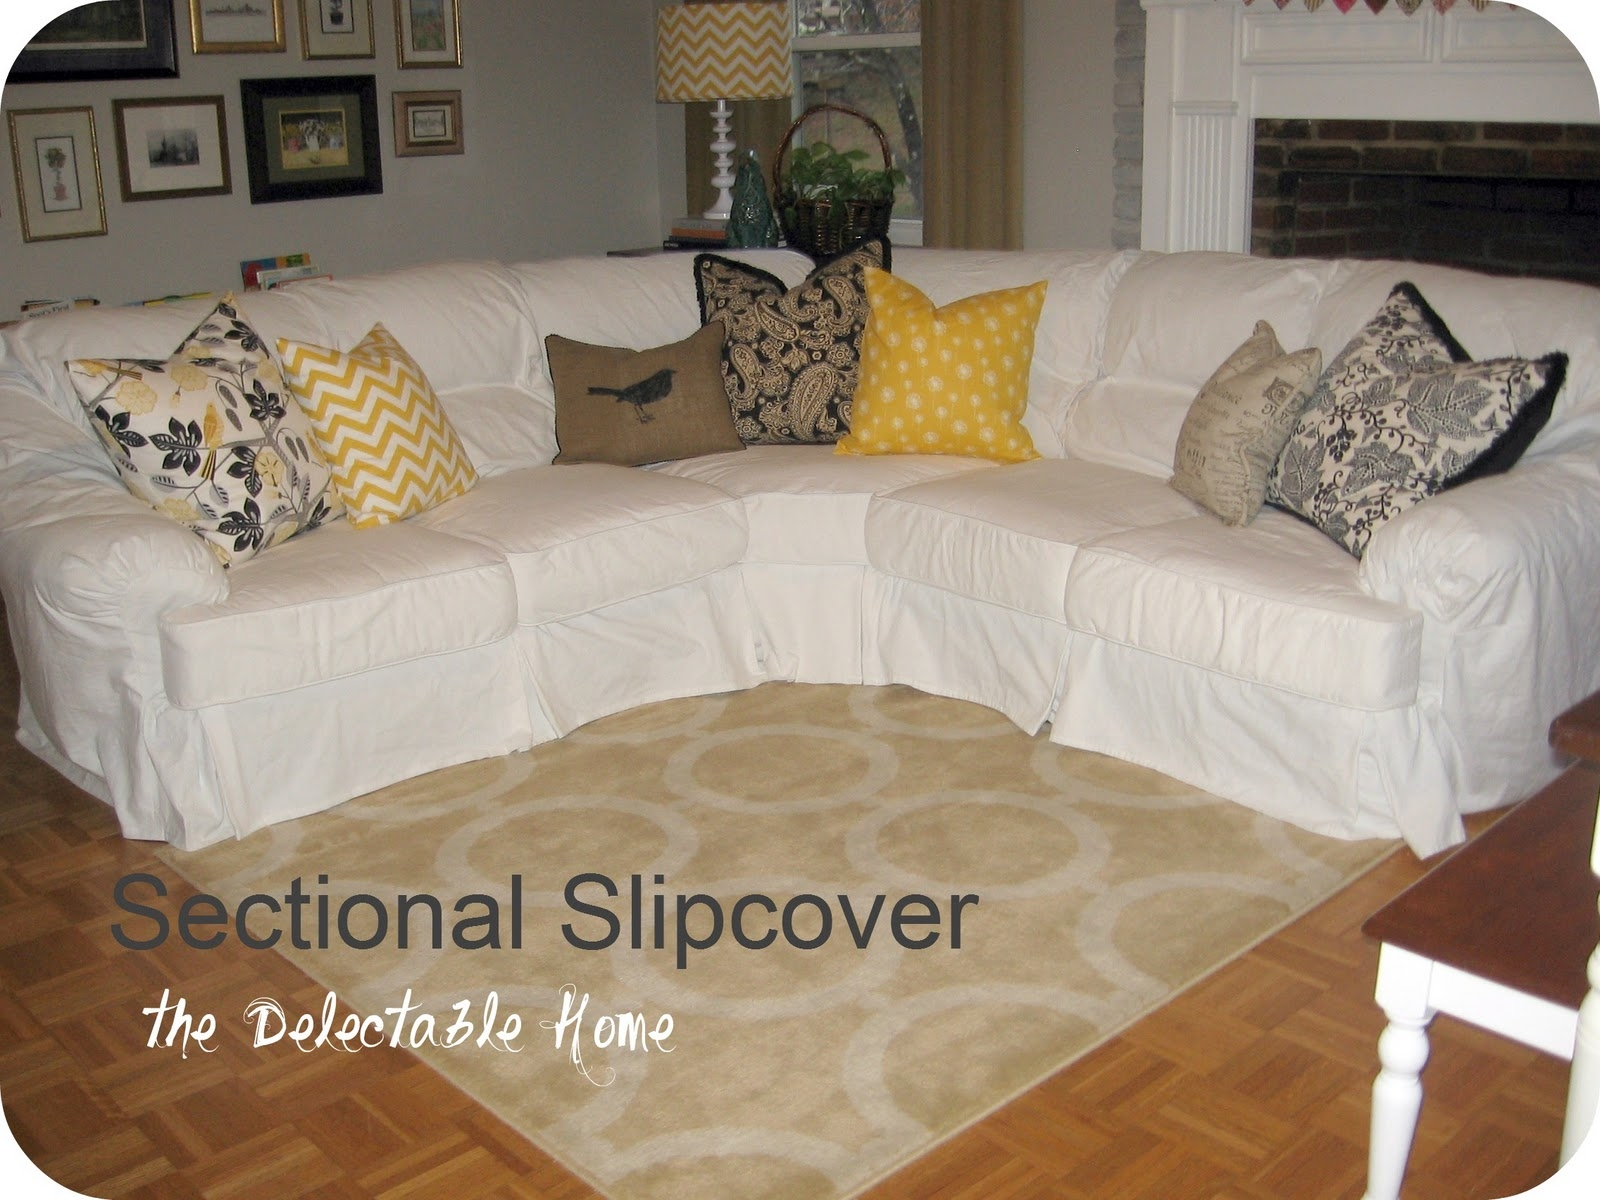 25 Best Ideas About Sectional Slipcover On Pinterest With Regard To 3 Piece Sectional Sofa Slipcovers (Image 1 of 15)